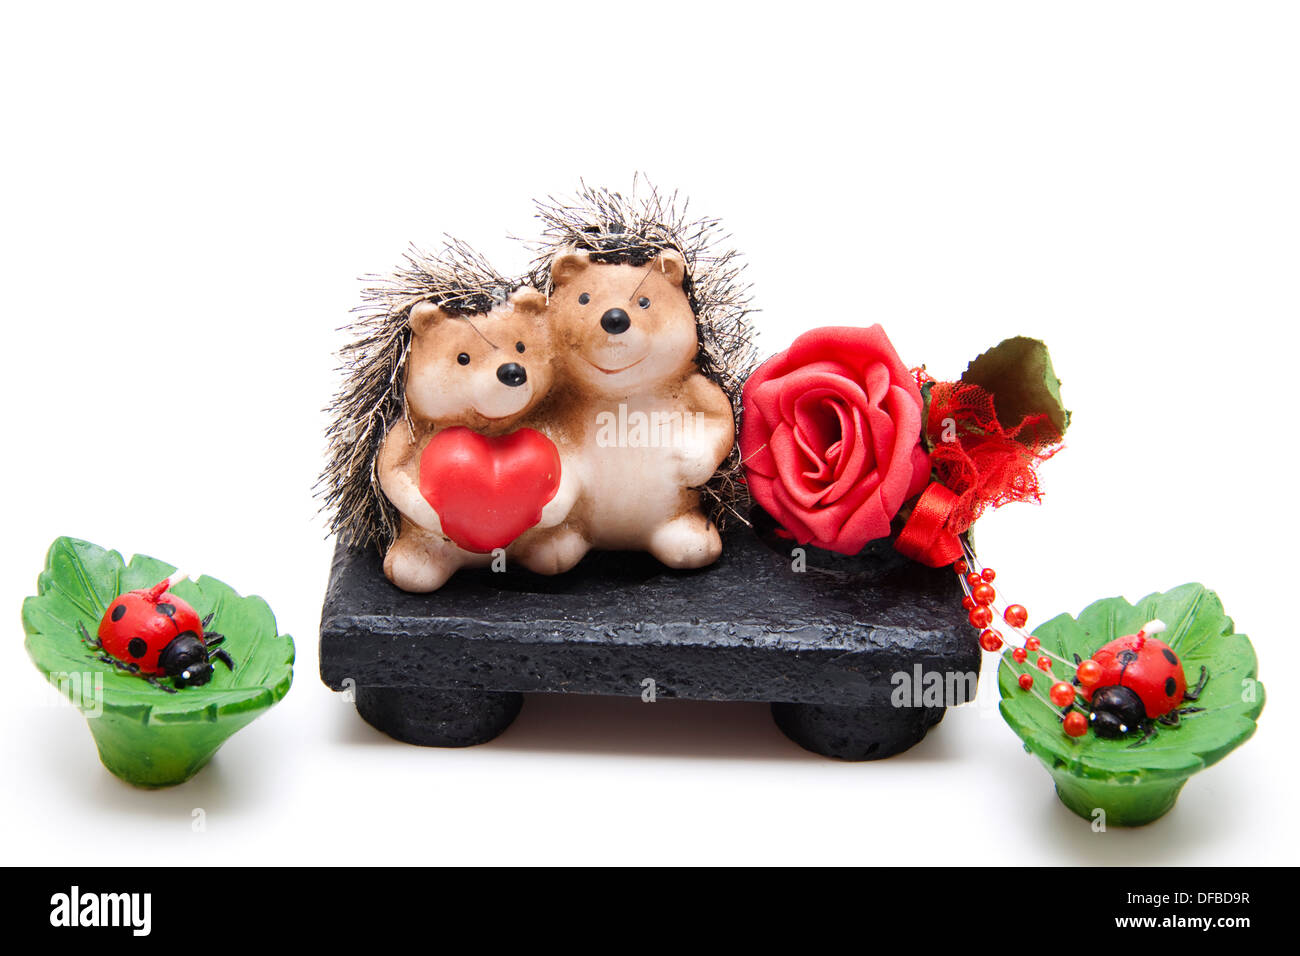 Hedgehog pair with rose - Stock Image